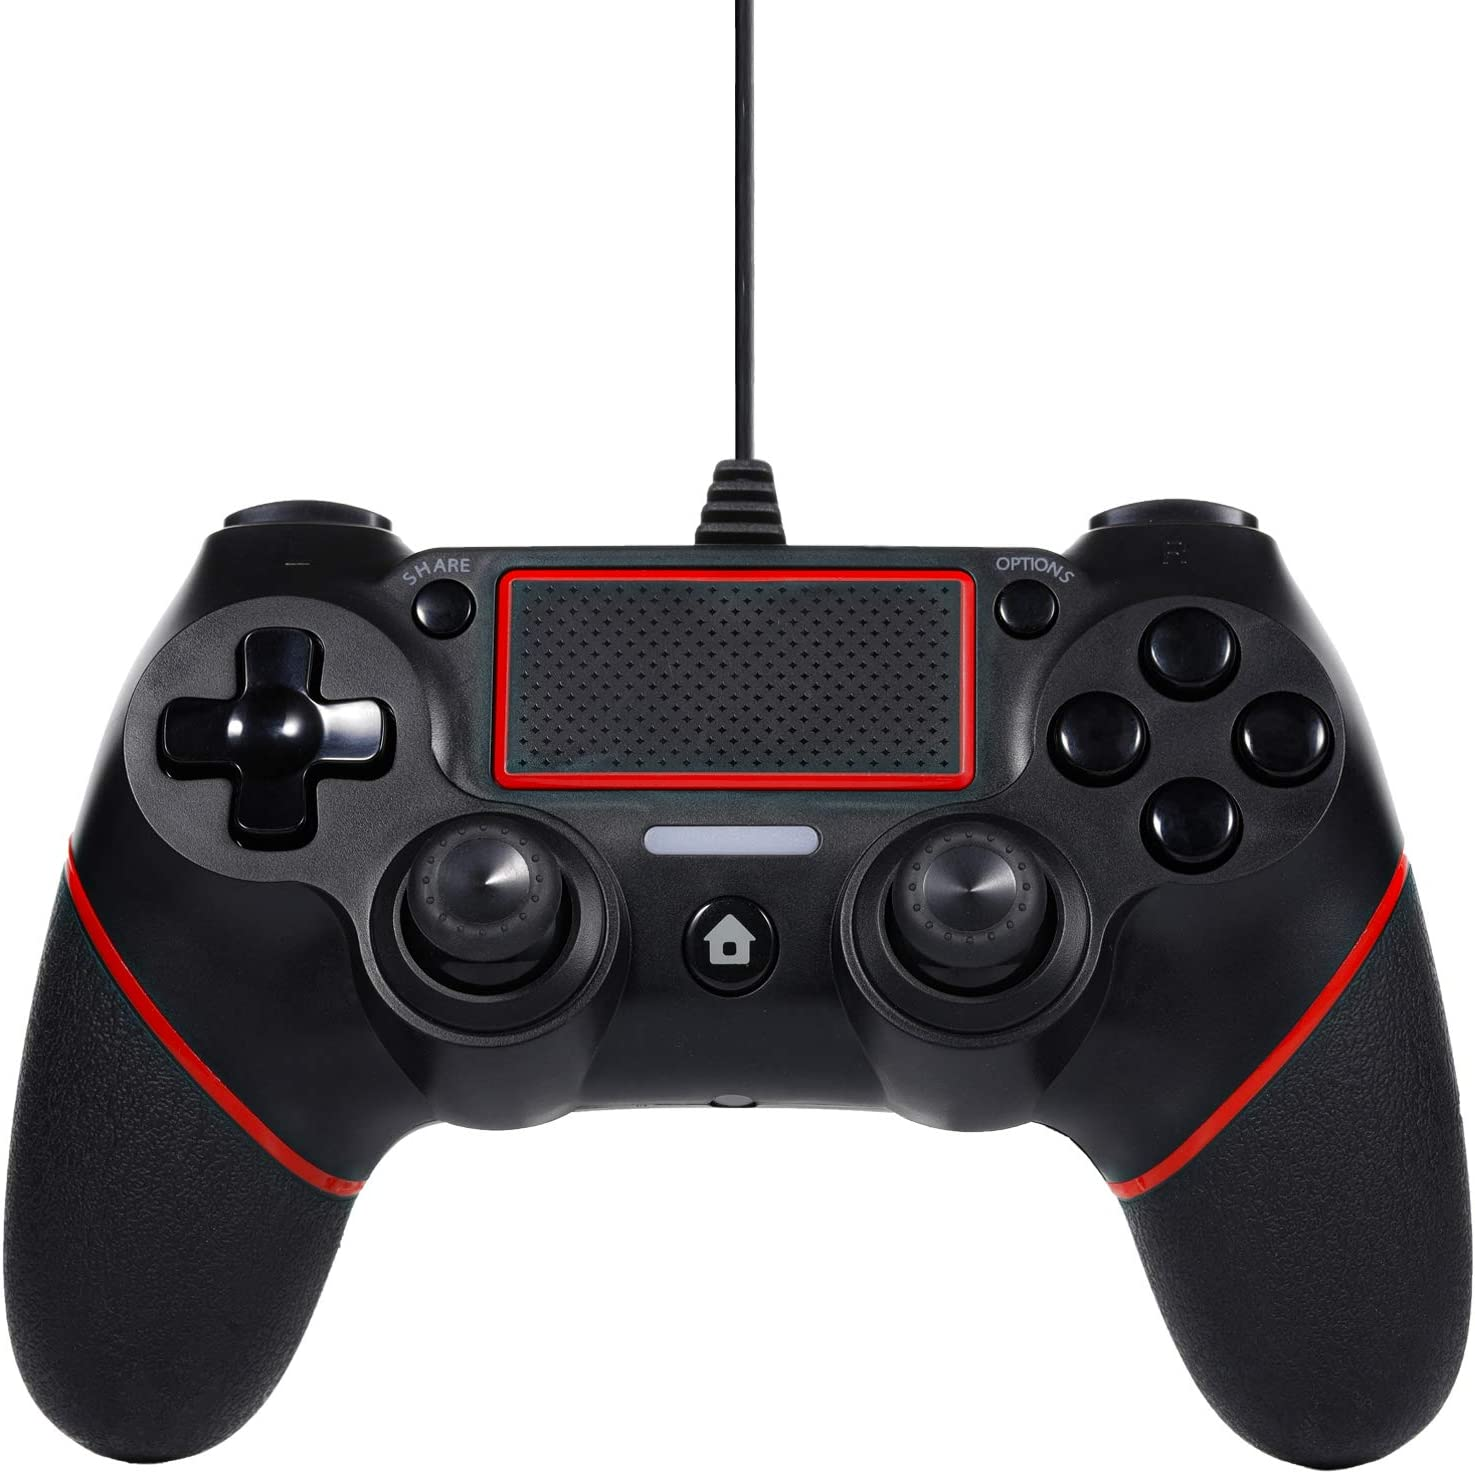 Sefitopher PS4 Wired Controller for Playstation 4/pro/Slim/PC/Laptop with Functions Such as Vibration, Colored LED Indicator, Double Vibration and Anti Slip Grip,6.5ft Cable Length (Black Red)